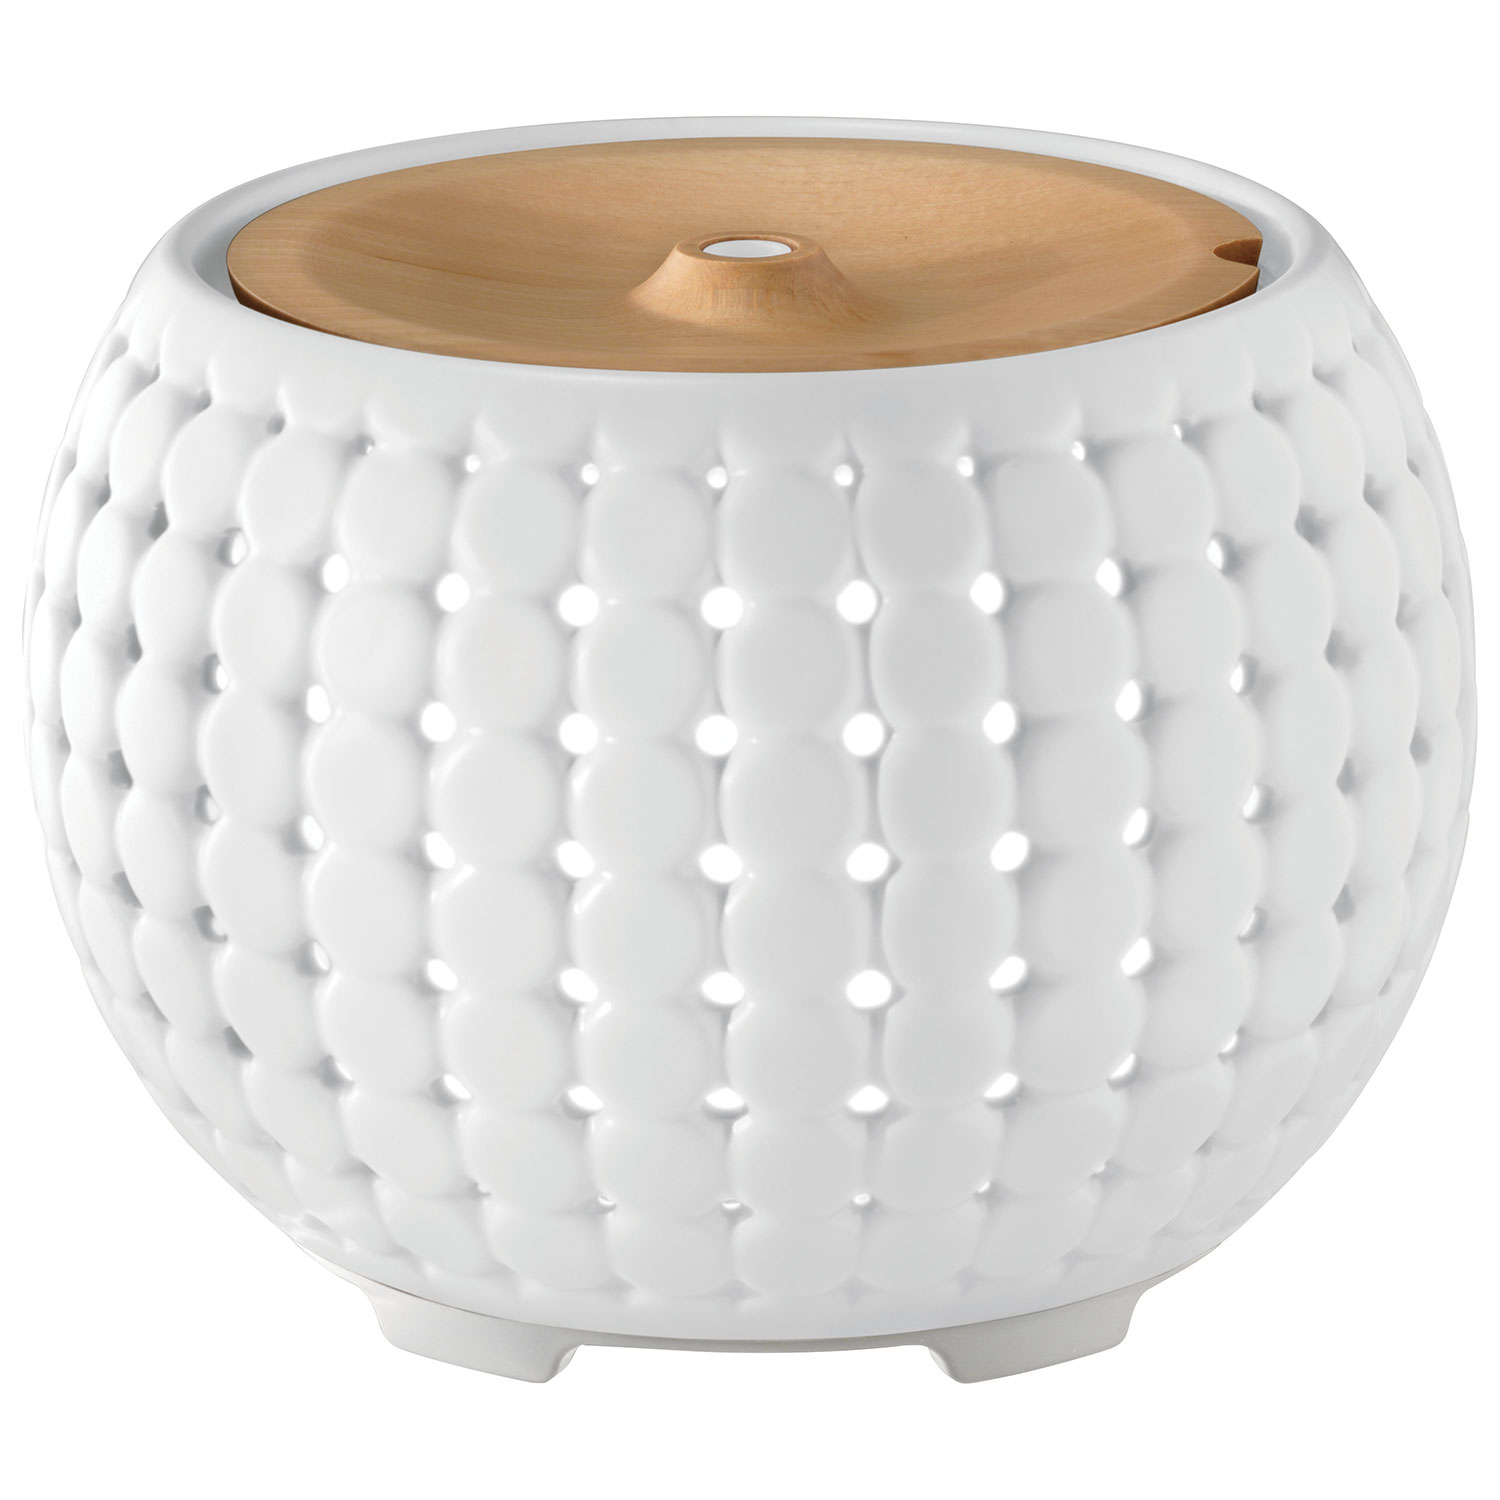 buy for baby or mom - homedics ellia diffuser